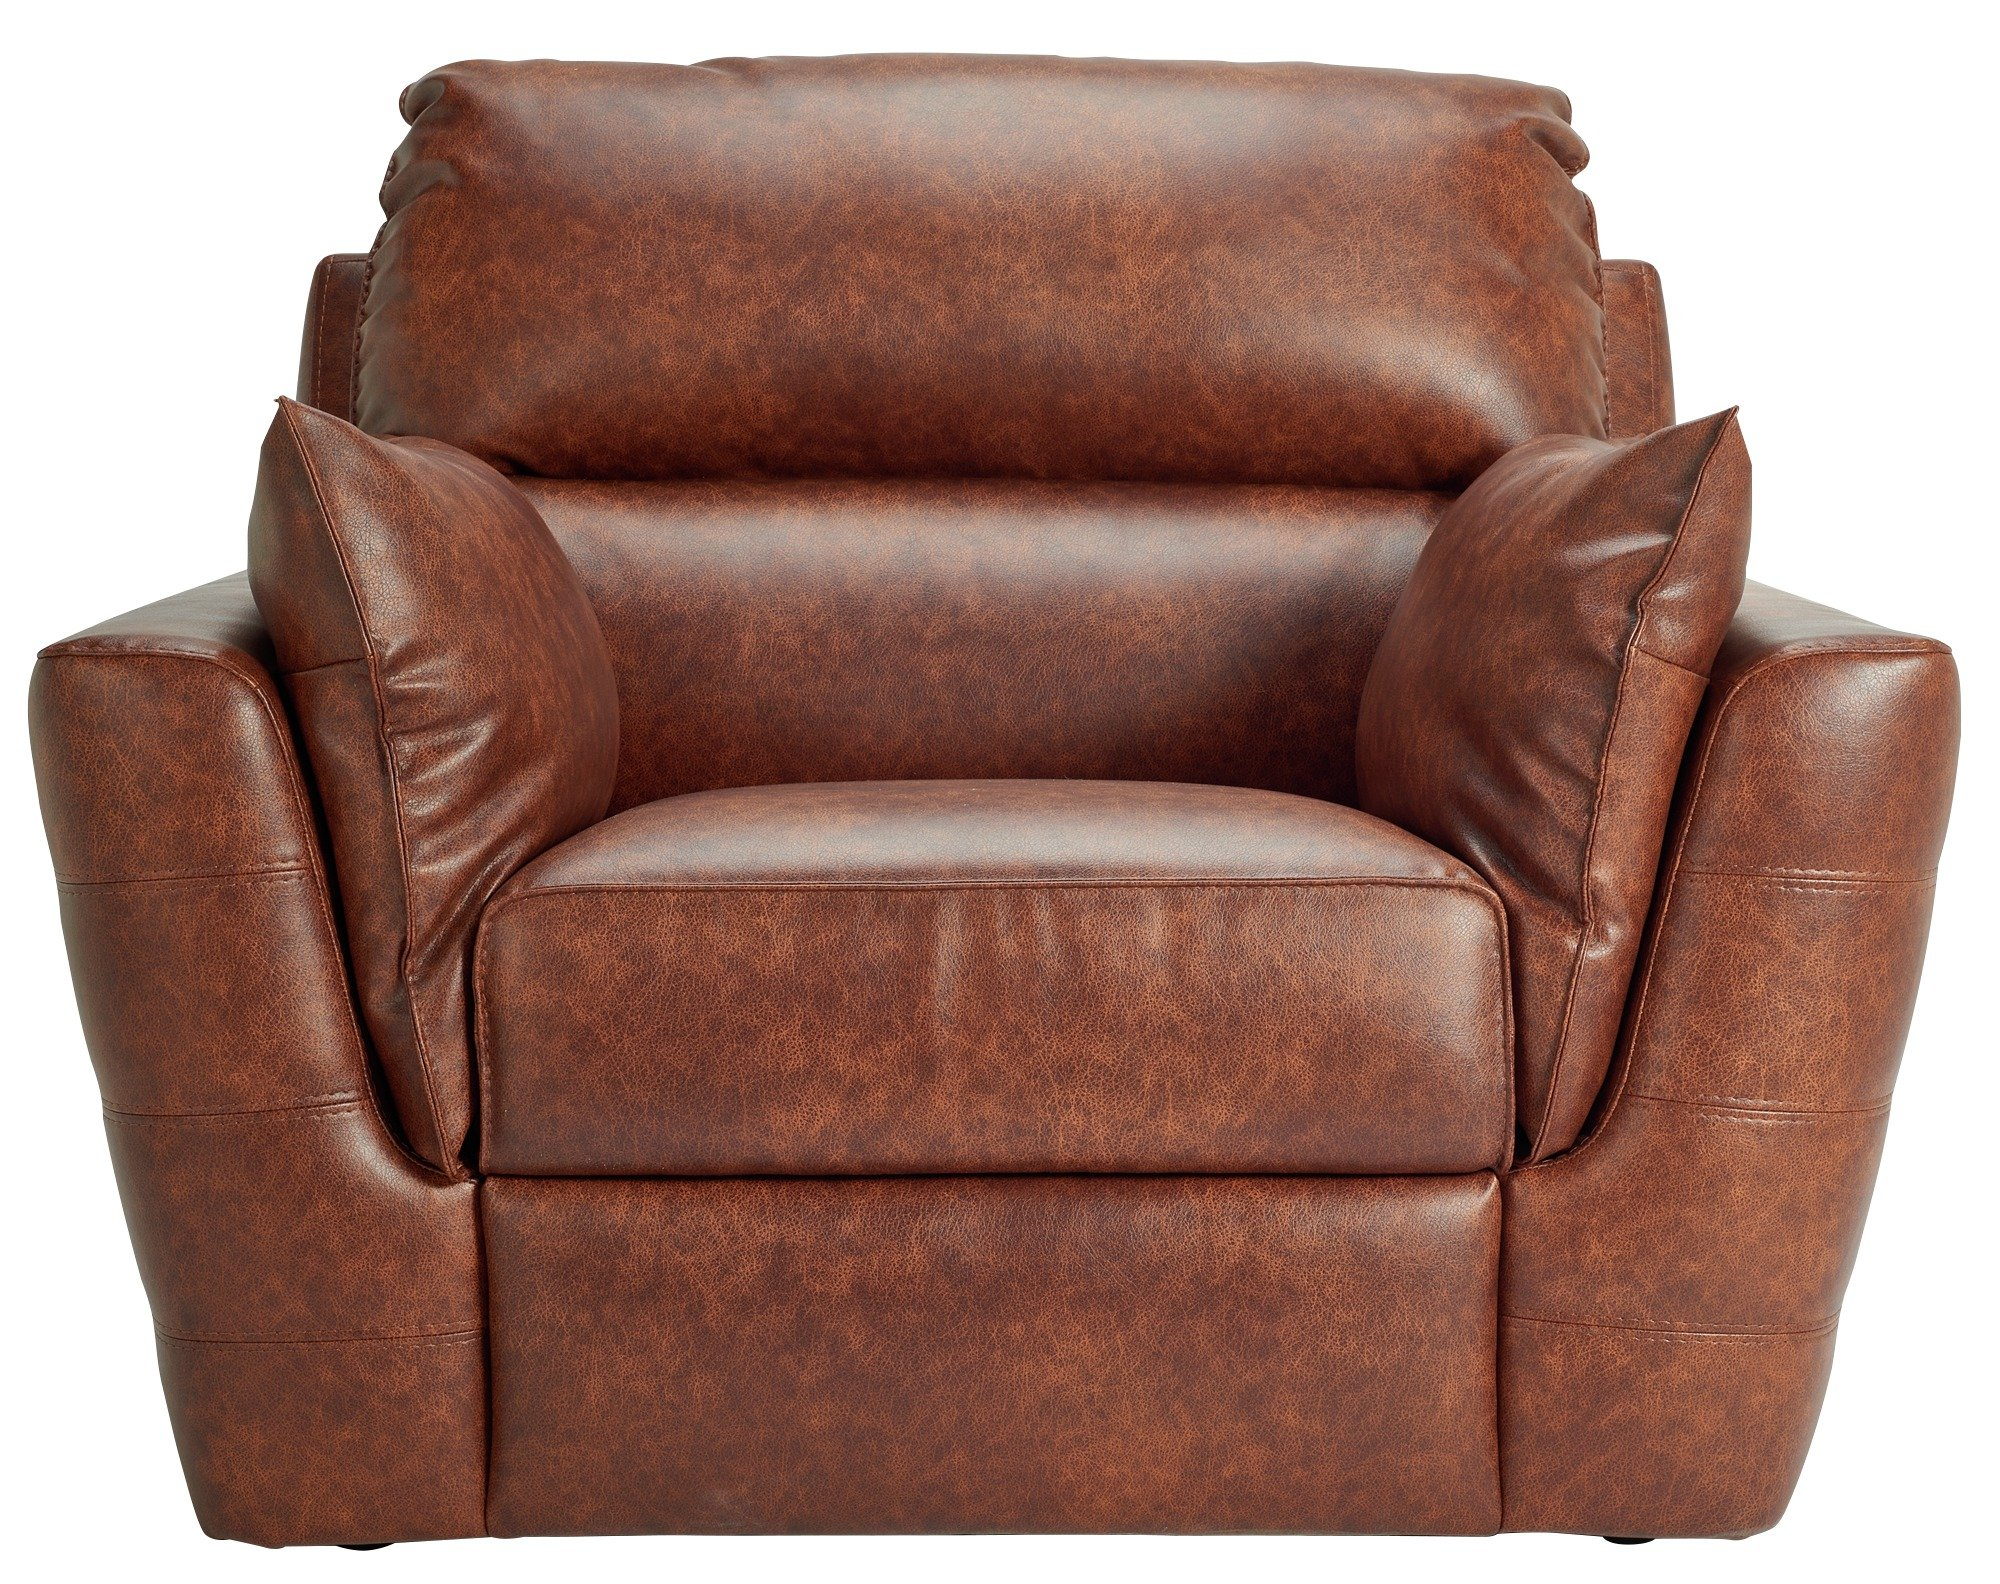 HOME Denver Leather Effect Chair - Chocolate